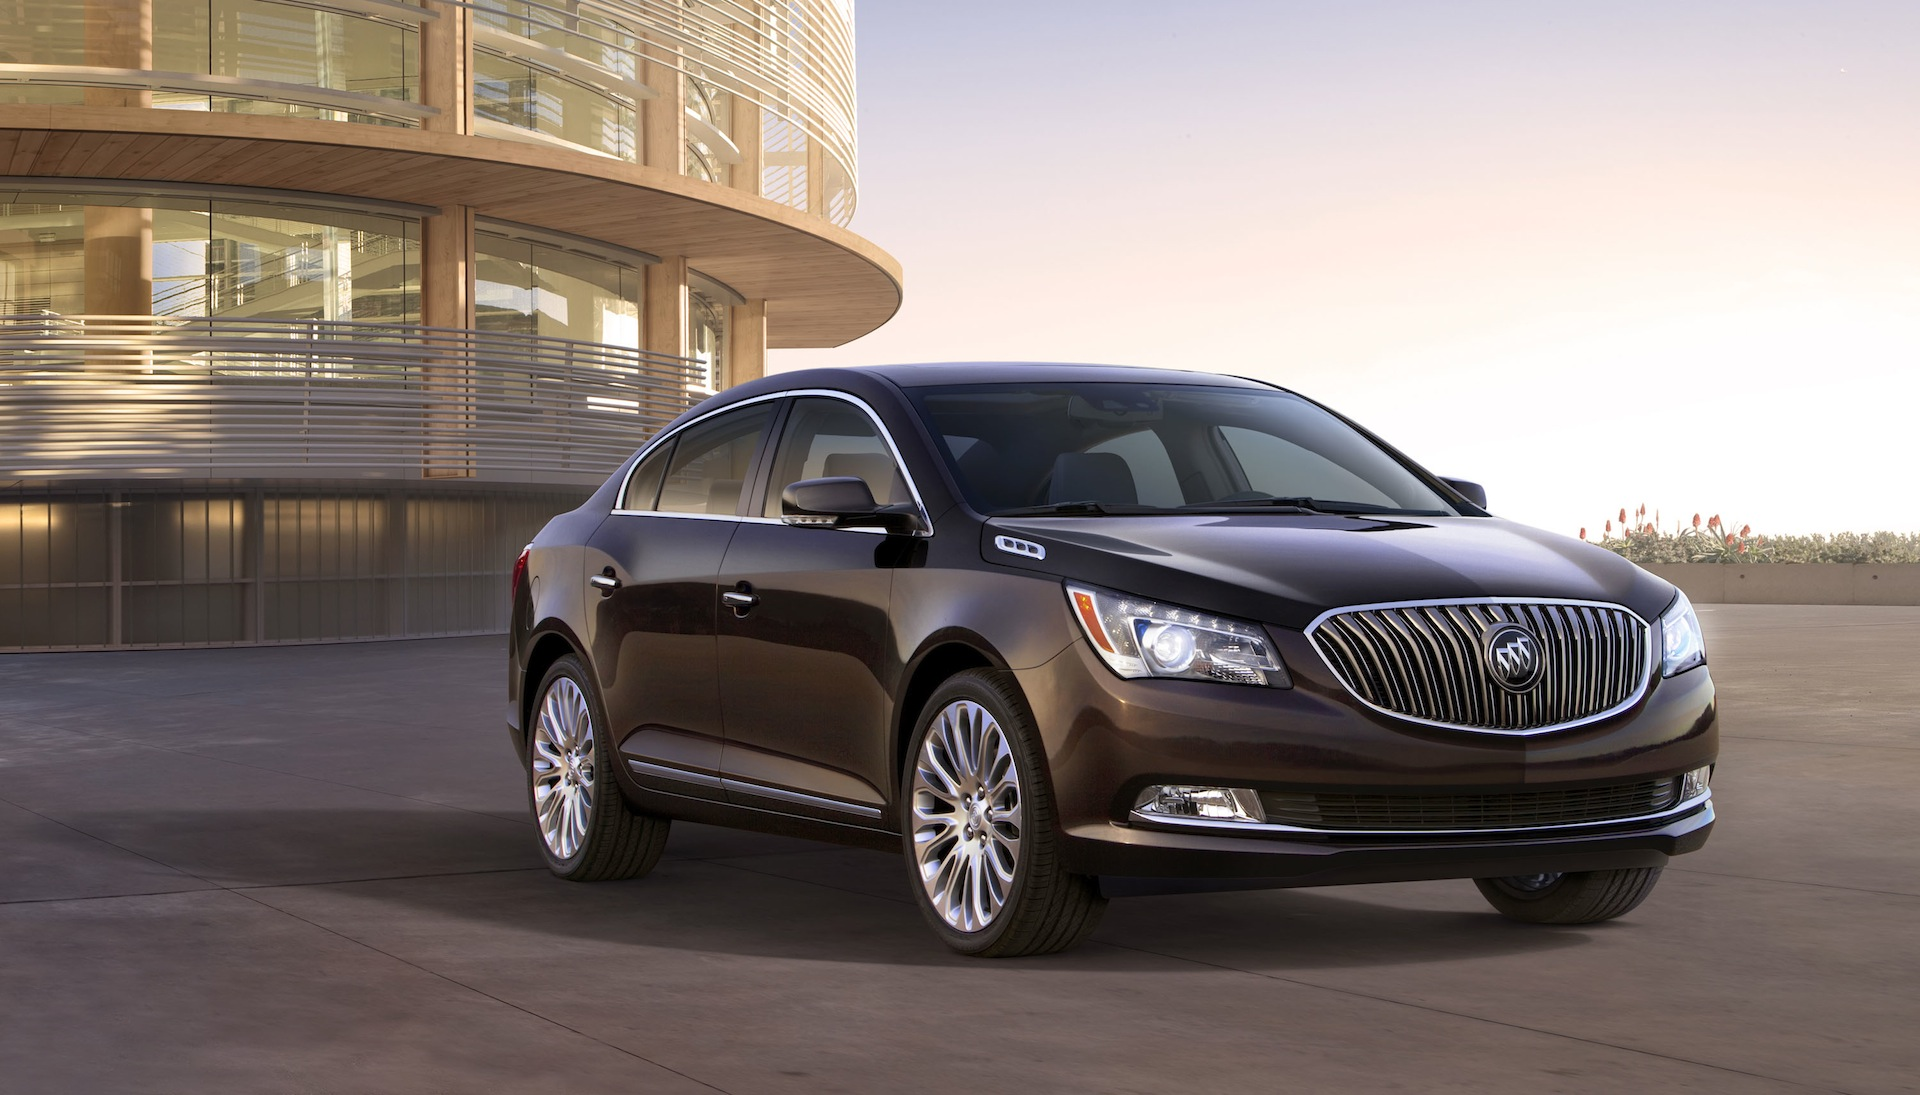 2014 buick lacrosse review ratings specs prices and photos the car connection. Black Bedroom Furniture Sets. Home Design Ideas